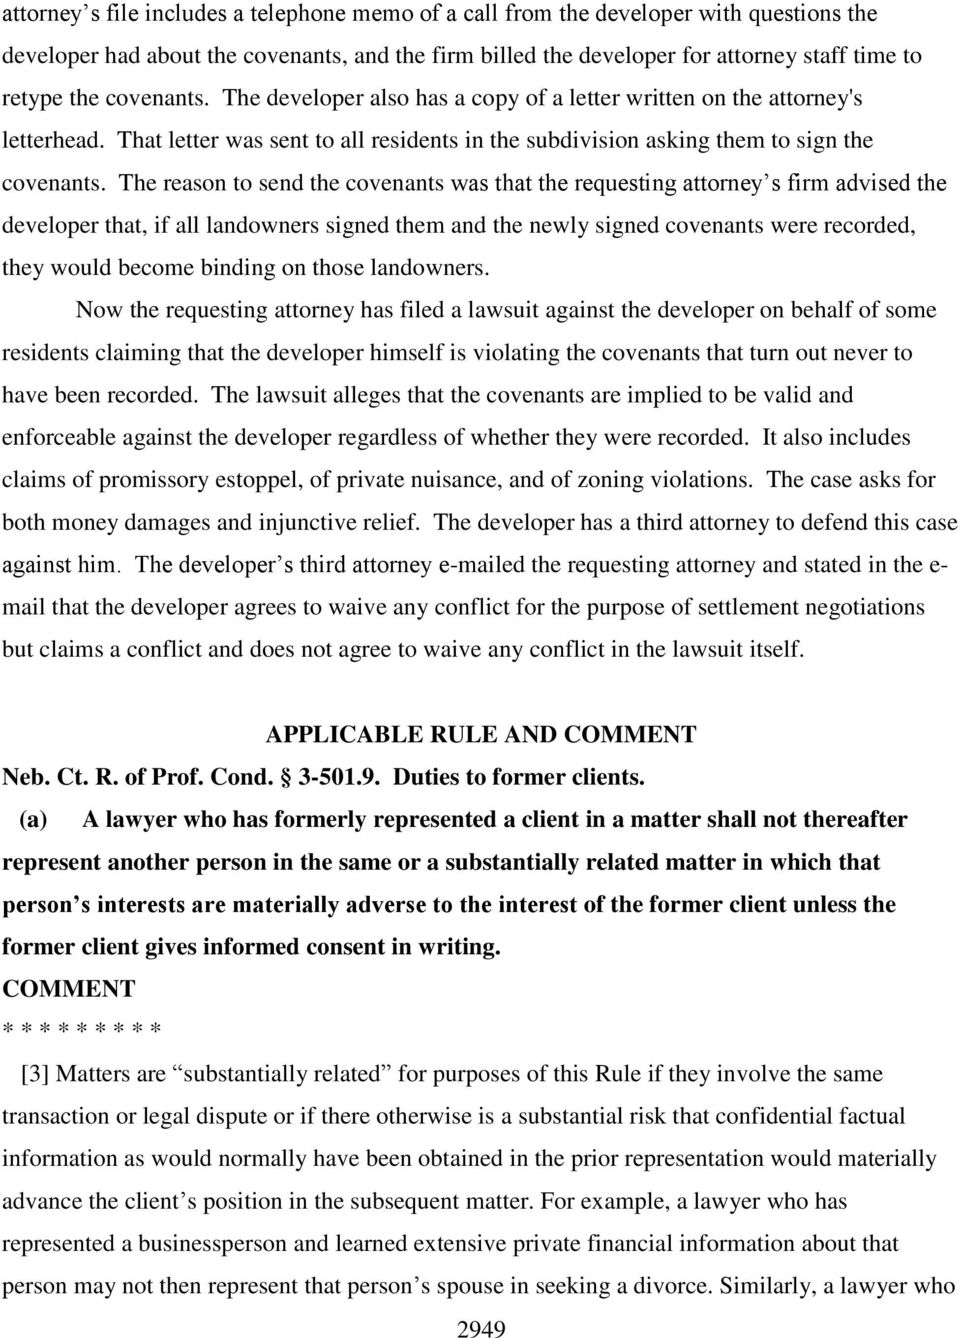 The reason to send the covenants was that the requesting attorney s firm advised the developer that, if all landowners signed them and the newly signed covenants were recorded, they would become